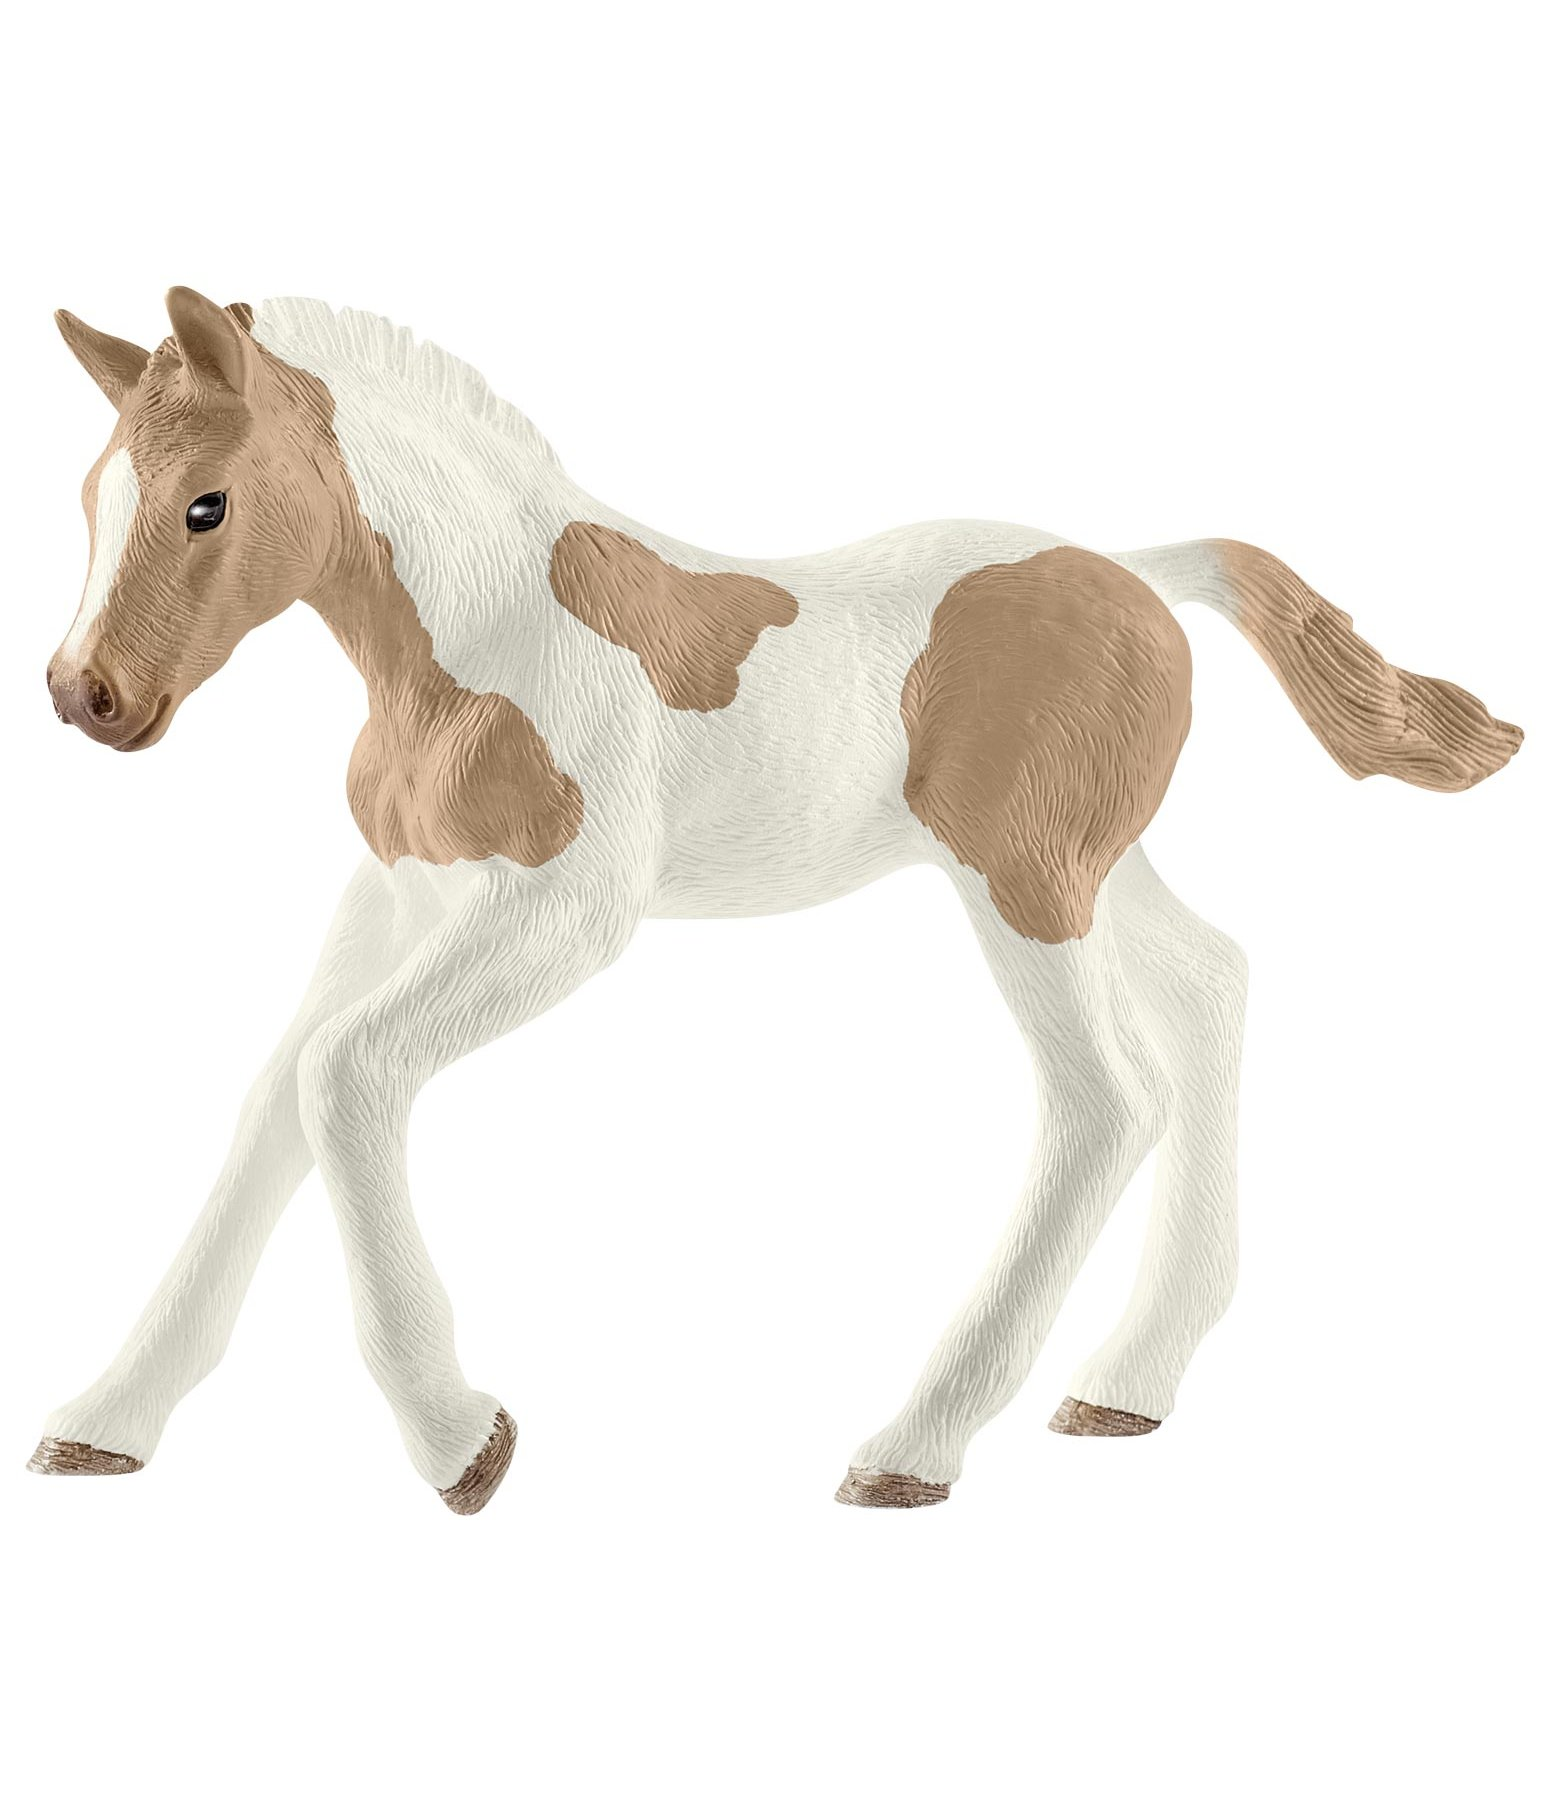 Schleich Horse Club-Andalou Poulain Cheval-Toy Figure